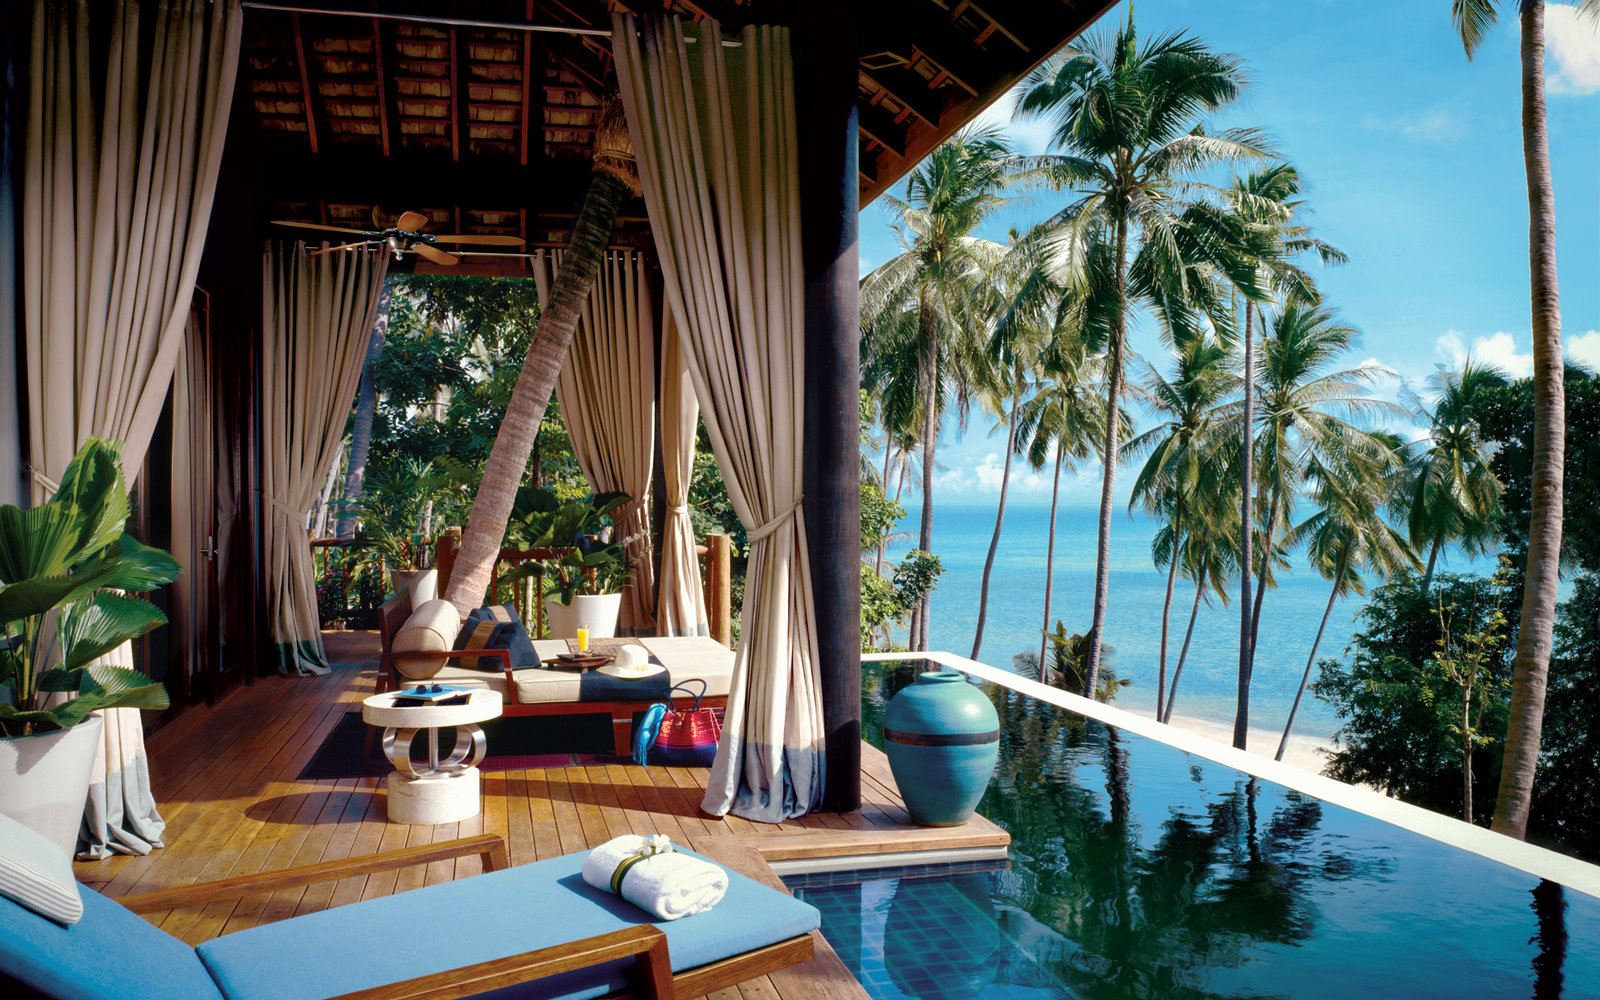 15. Four Seasons Resort Koh Samui